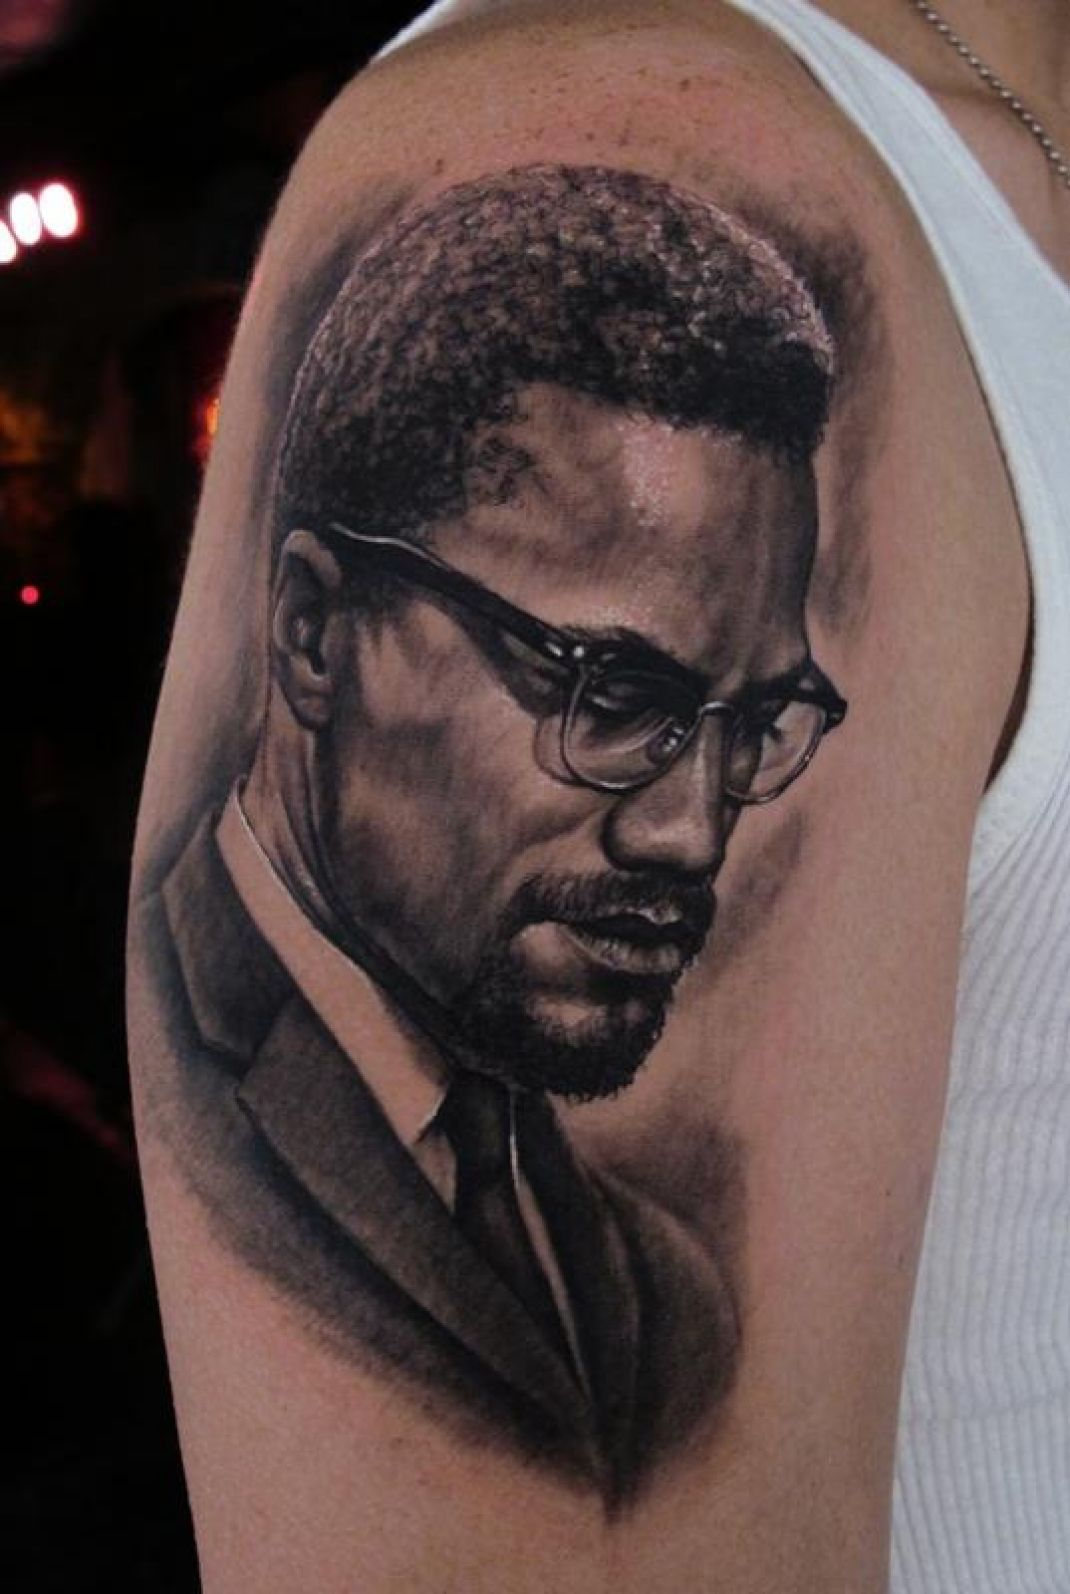 malcolm x tattoo enngraved tattoos pinterest tattoo firefighter tattoos and body art. Black Bedroom Furniture Sets. Home Design Ideas